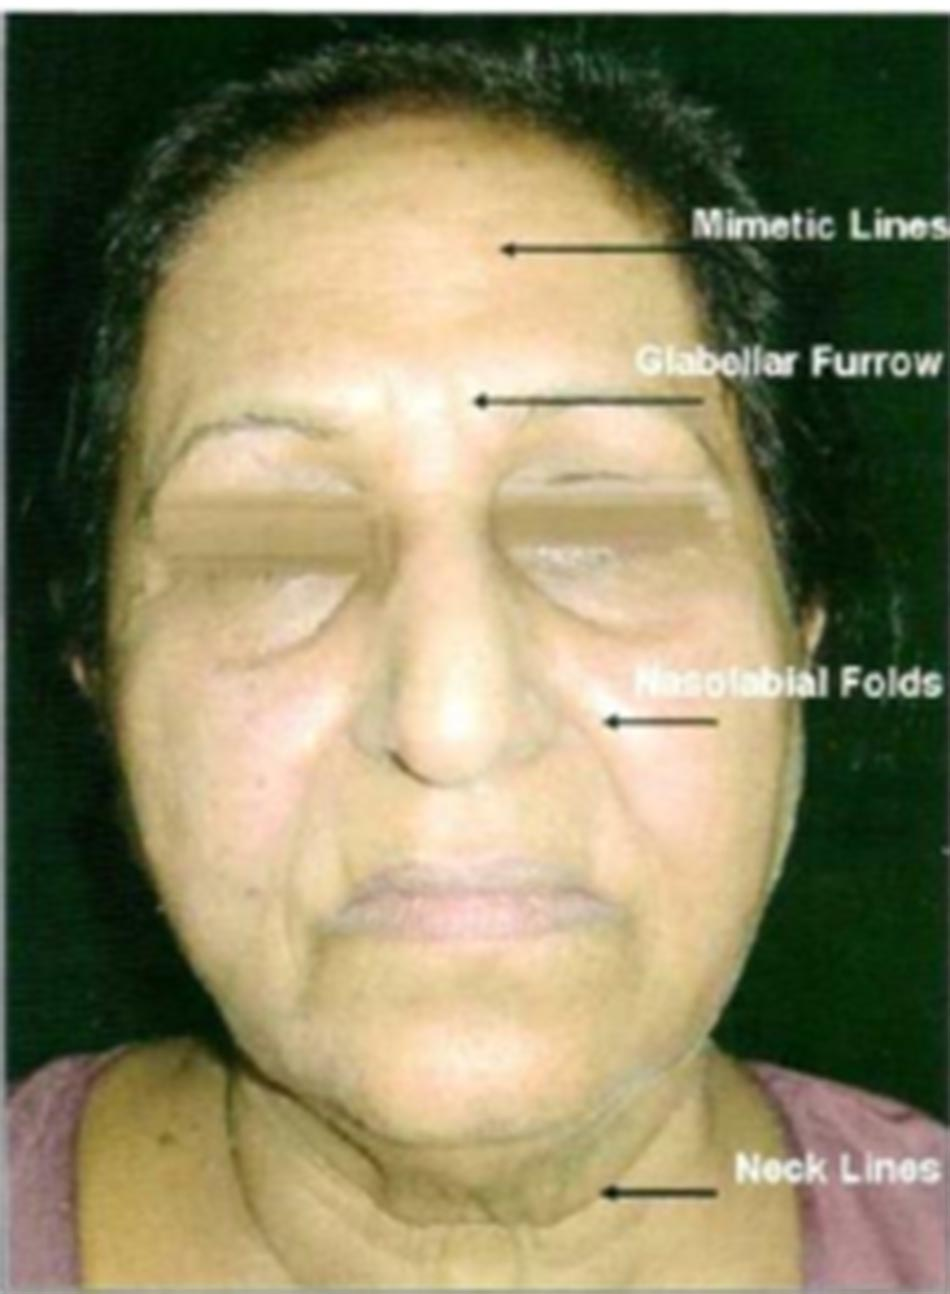 Hình 5-8 Mimetic Lines, Wrinkles, Furows and Folds